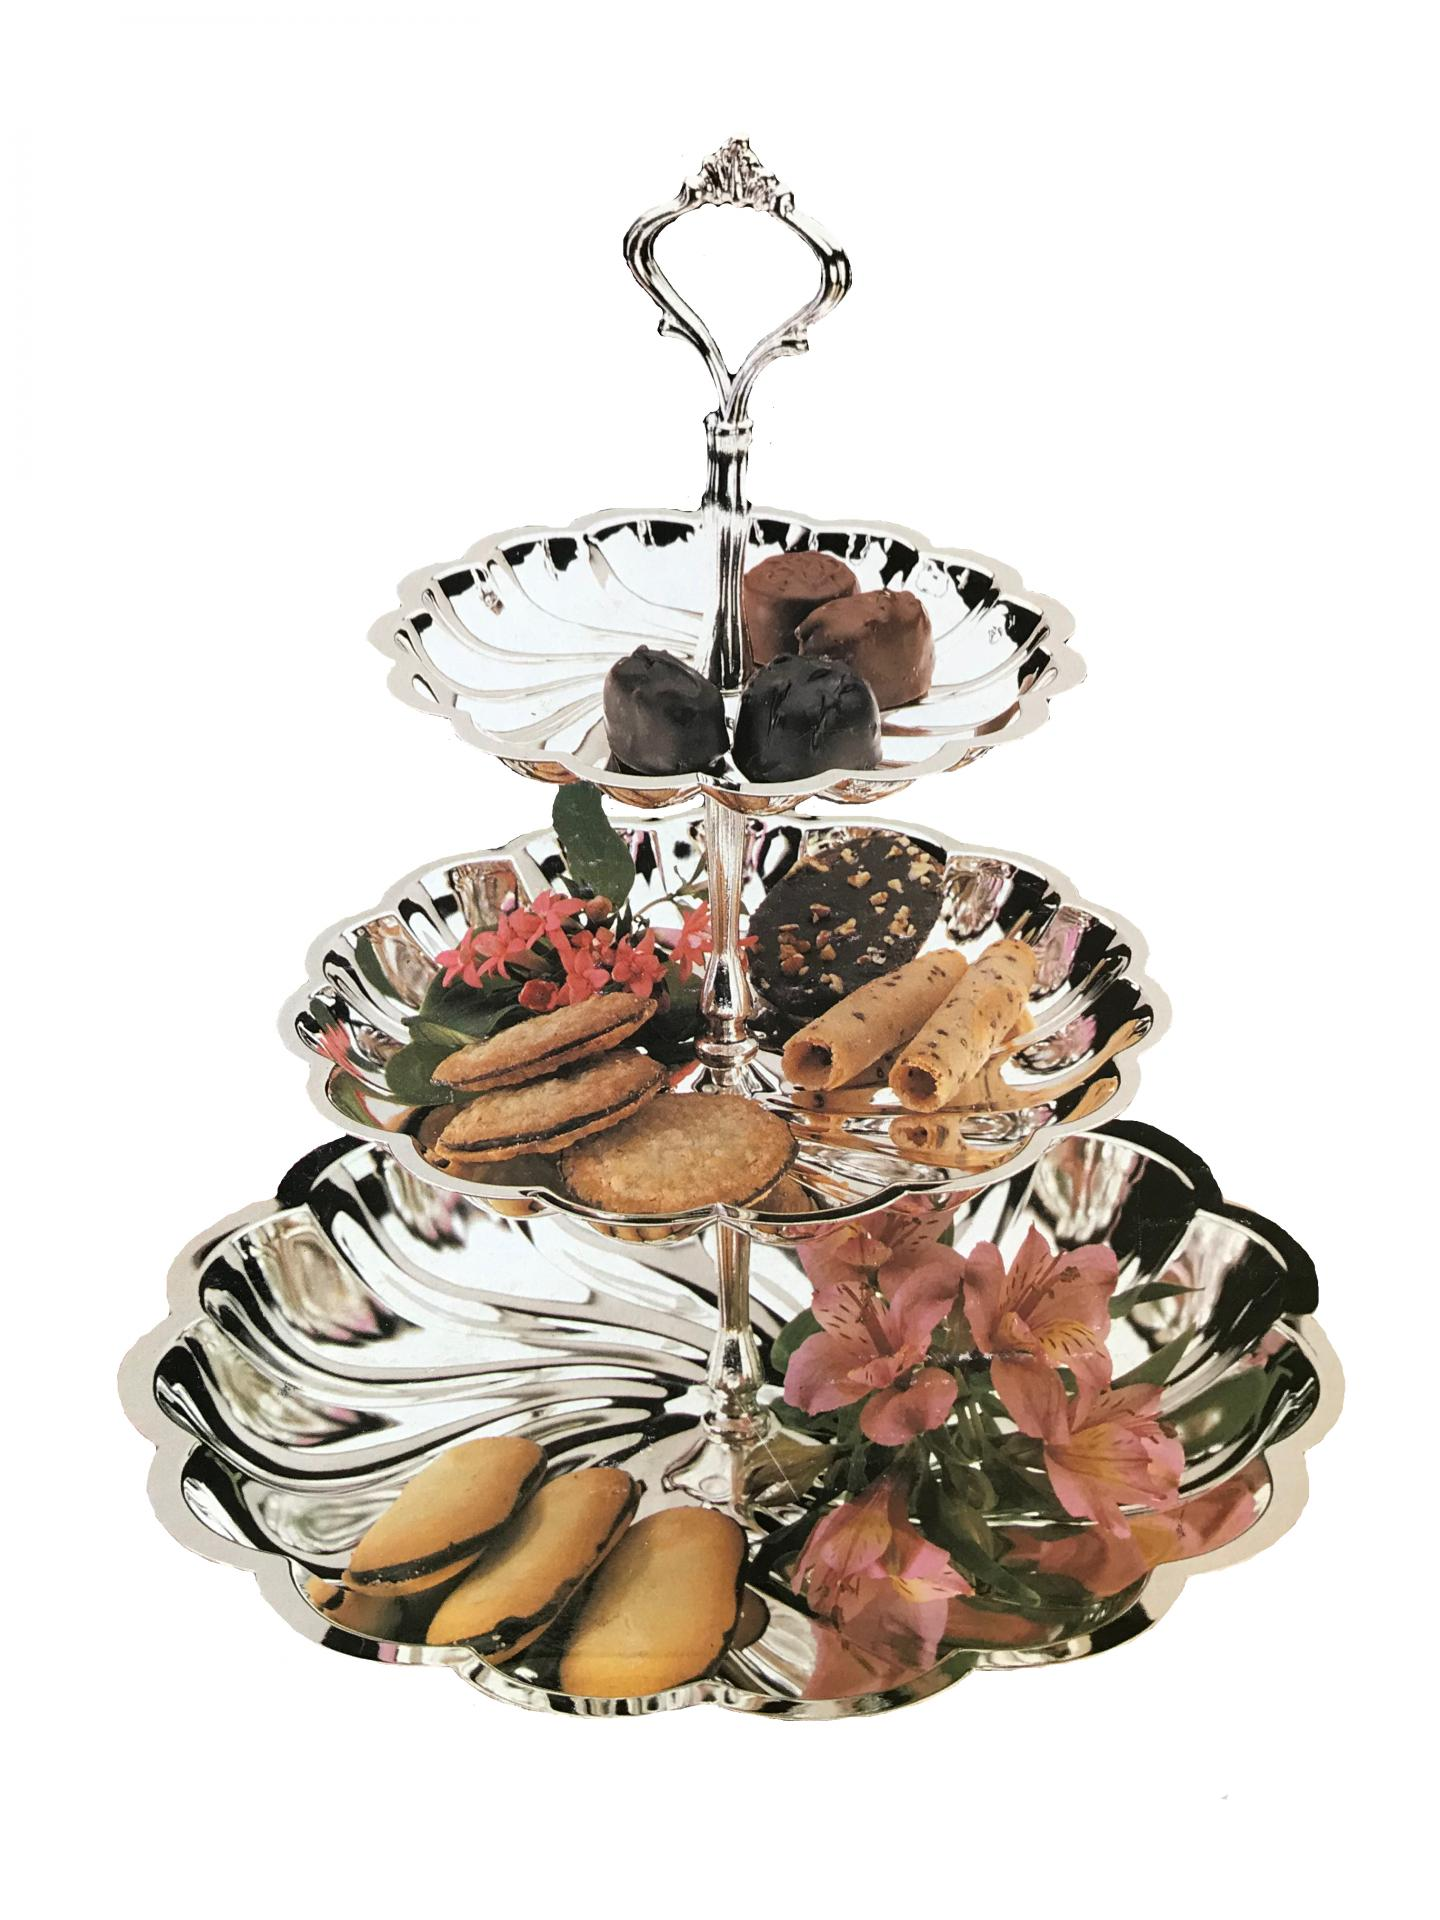 3 Tier Silver Serving Tray Rental Products Aays Event Rentals